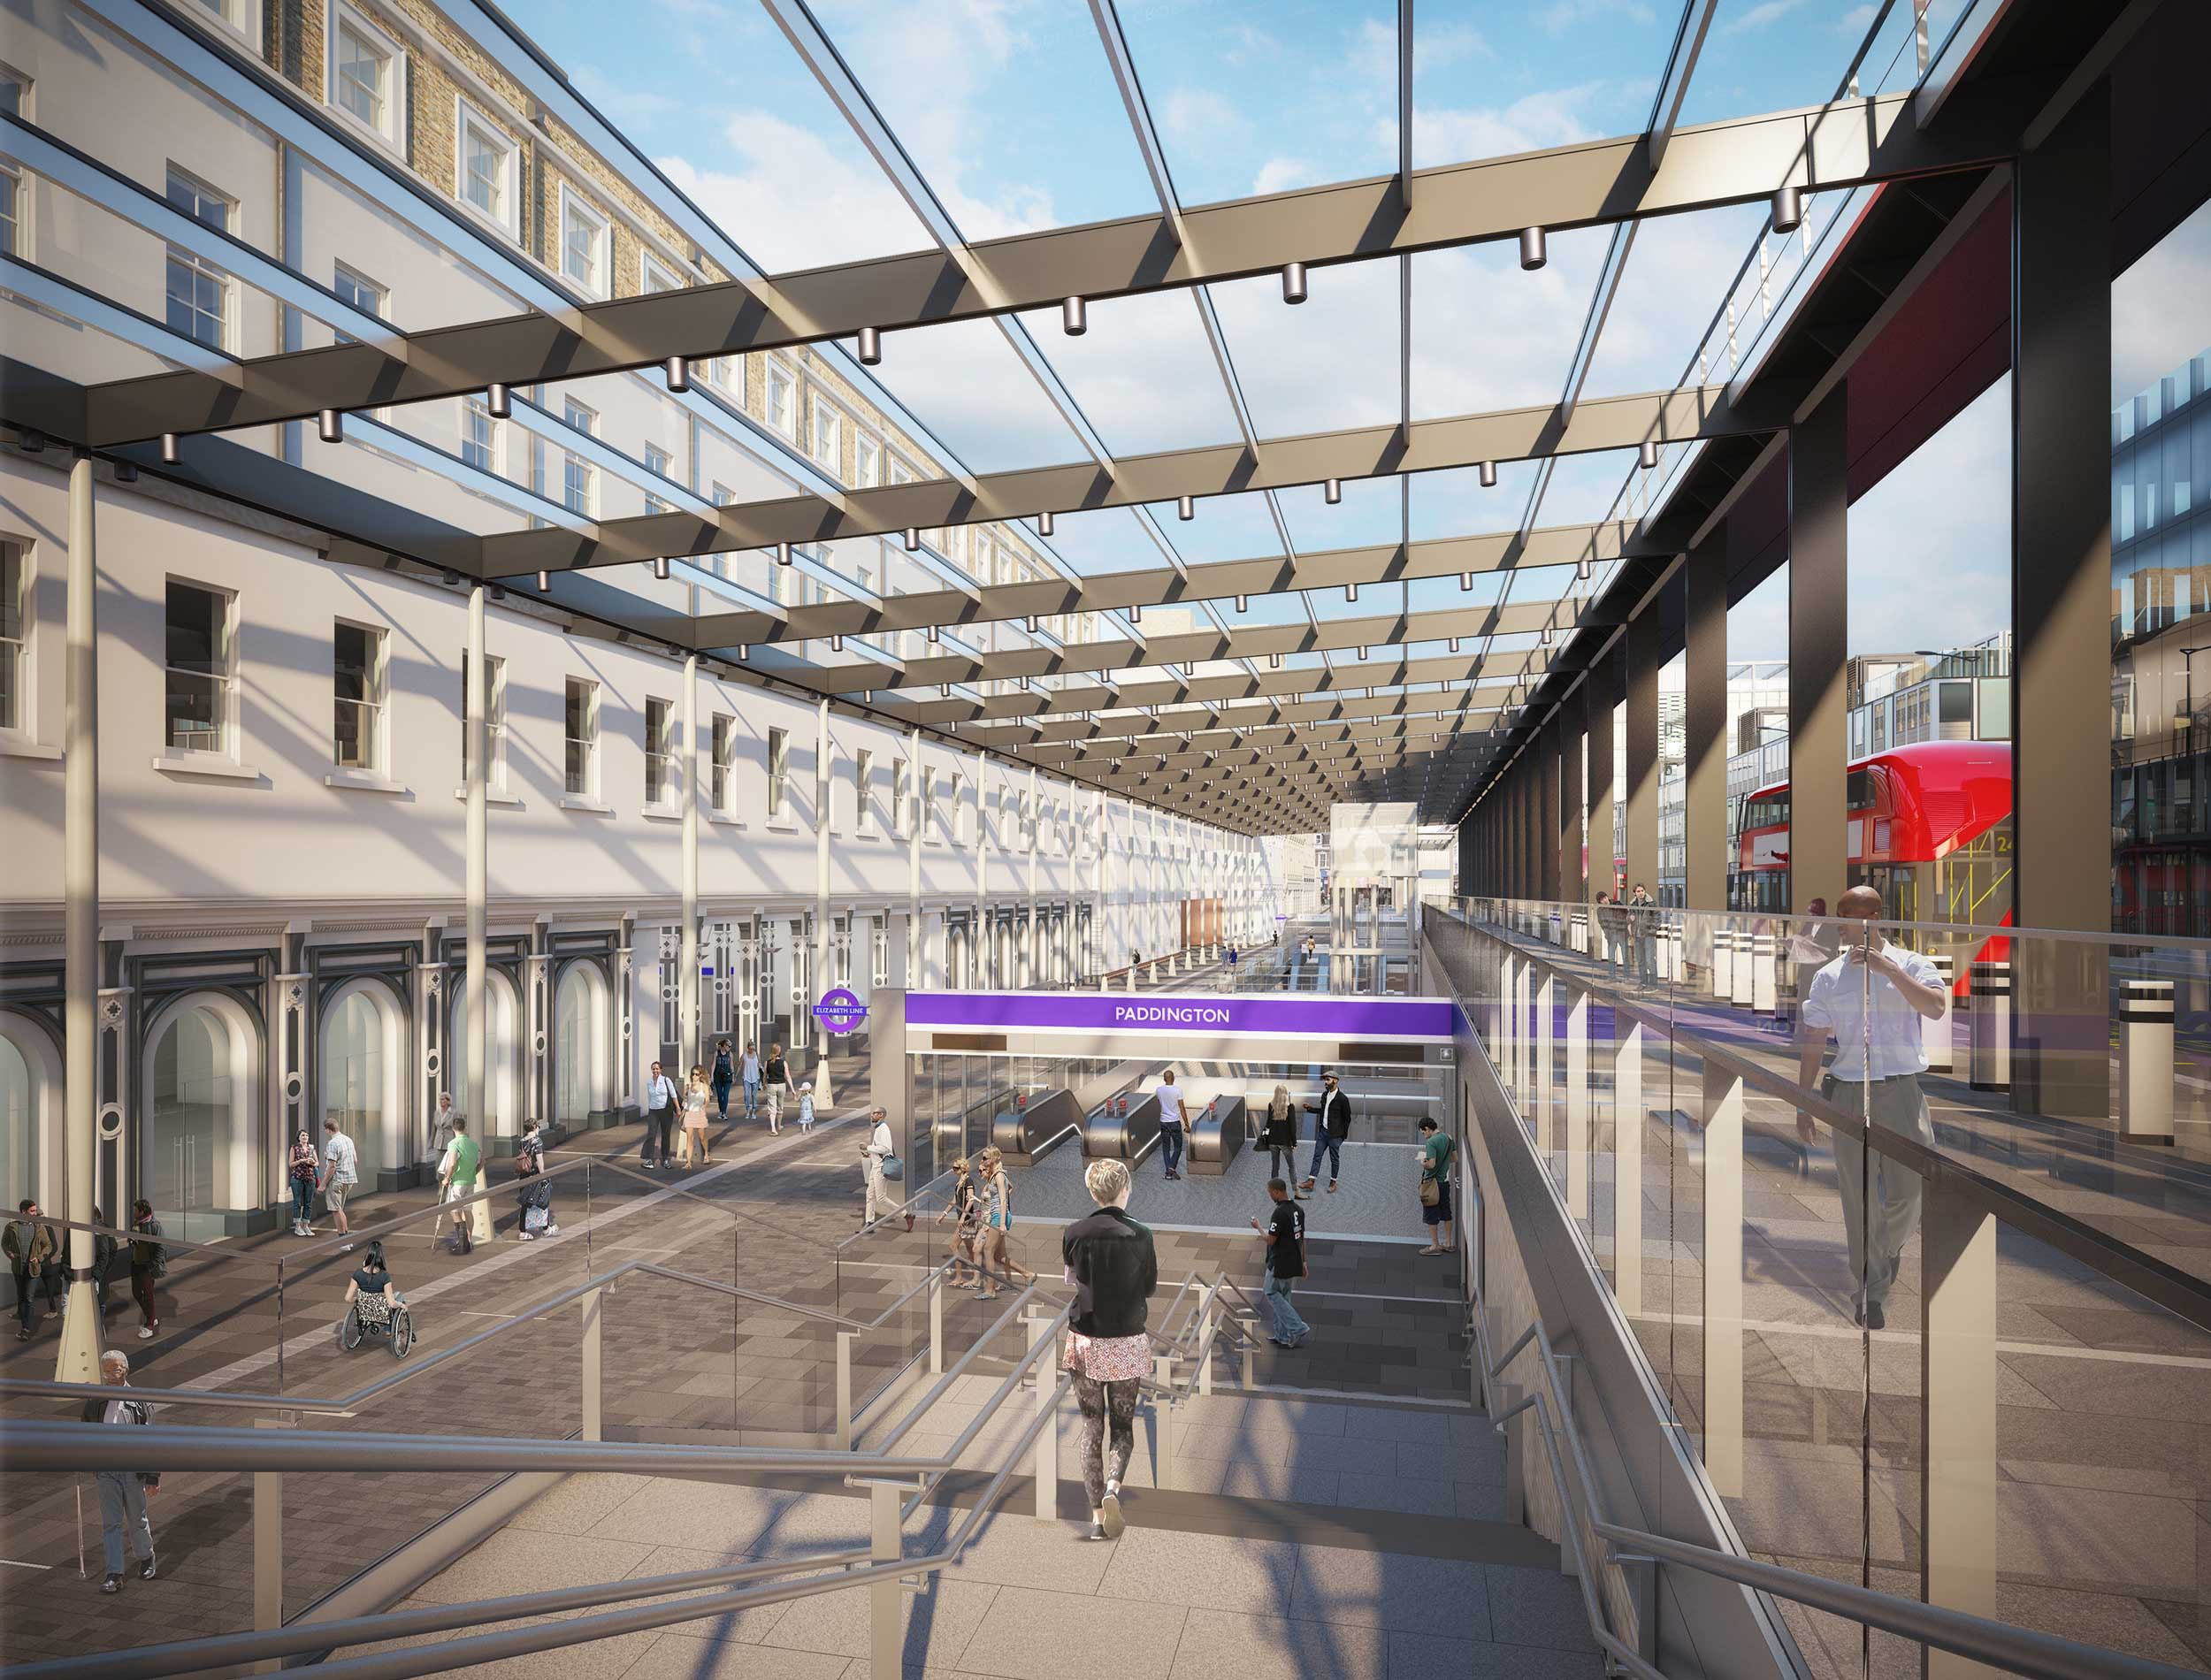 The UK government's invesment in infrastructure projects such as Crossrail are attracting development opportunities along the route. At Paddington, plans from Sellar Property Group, (the developers behind the Shard) have been brought forward due to better connectivity.